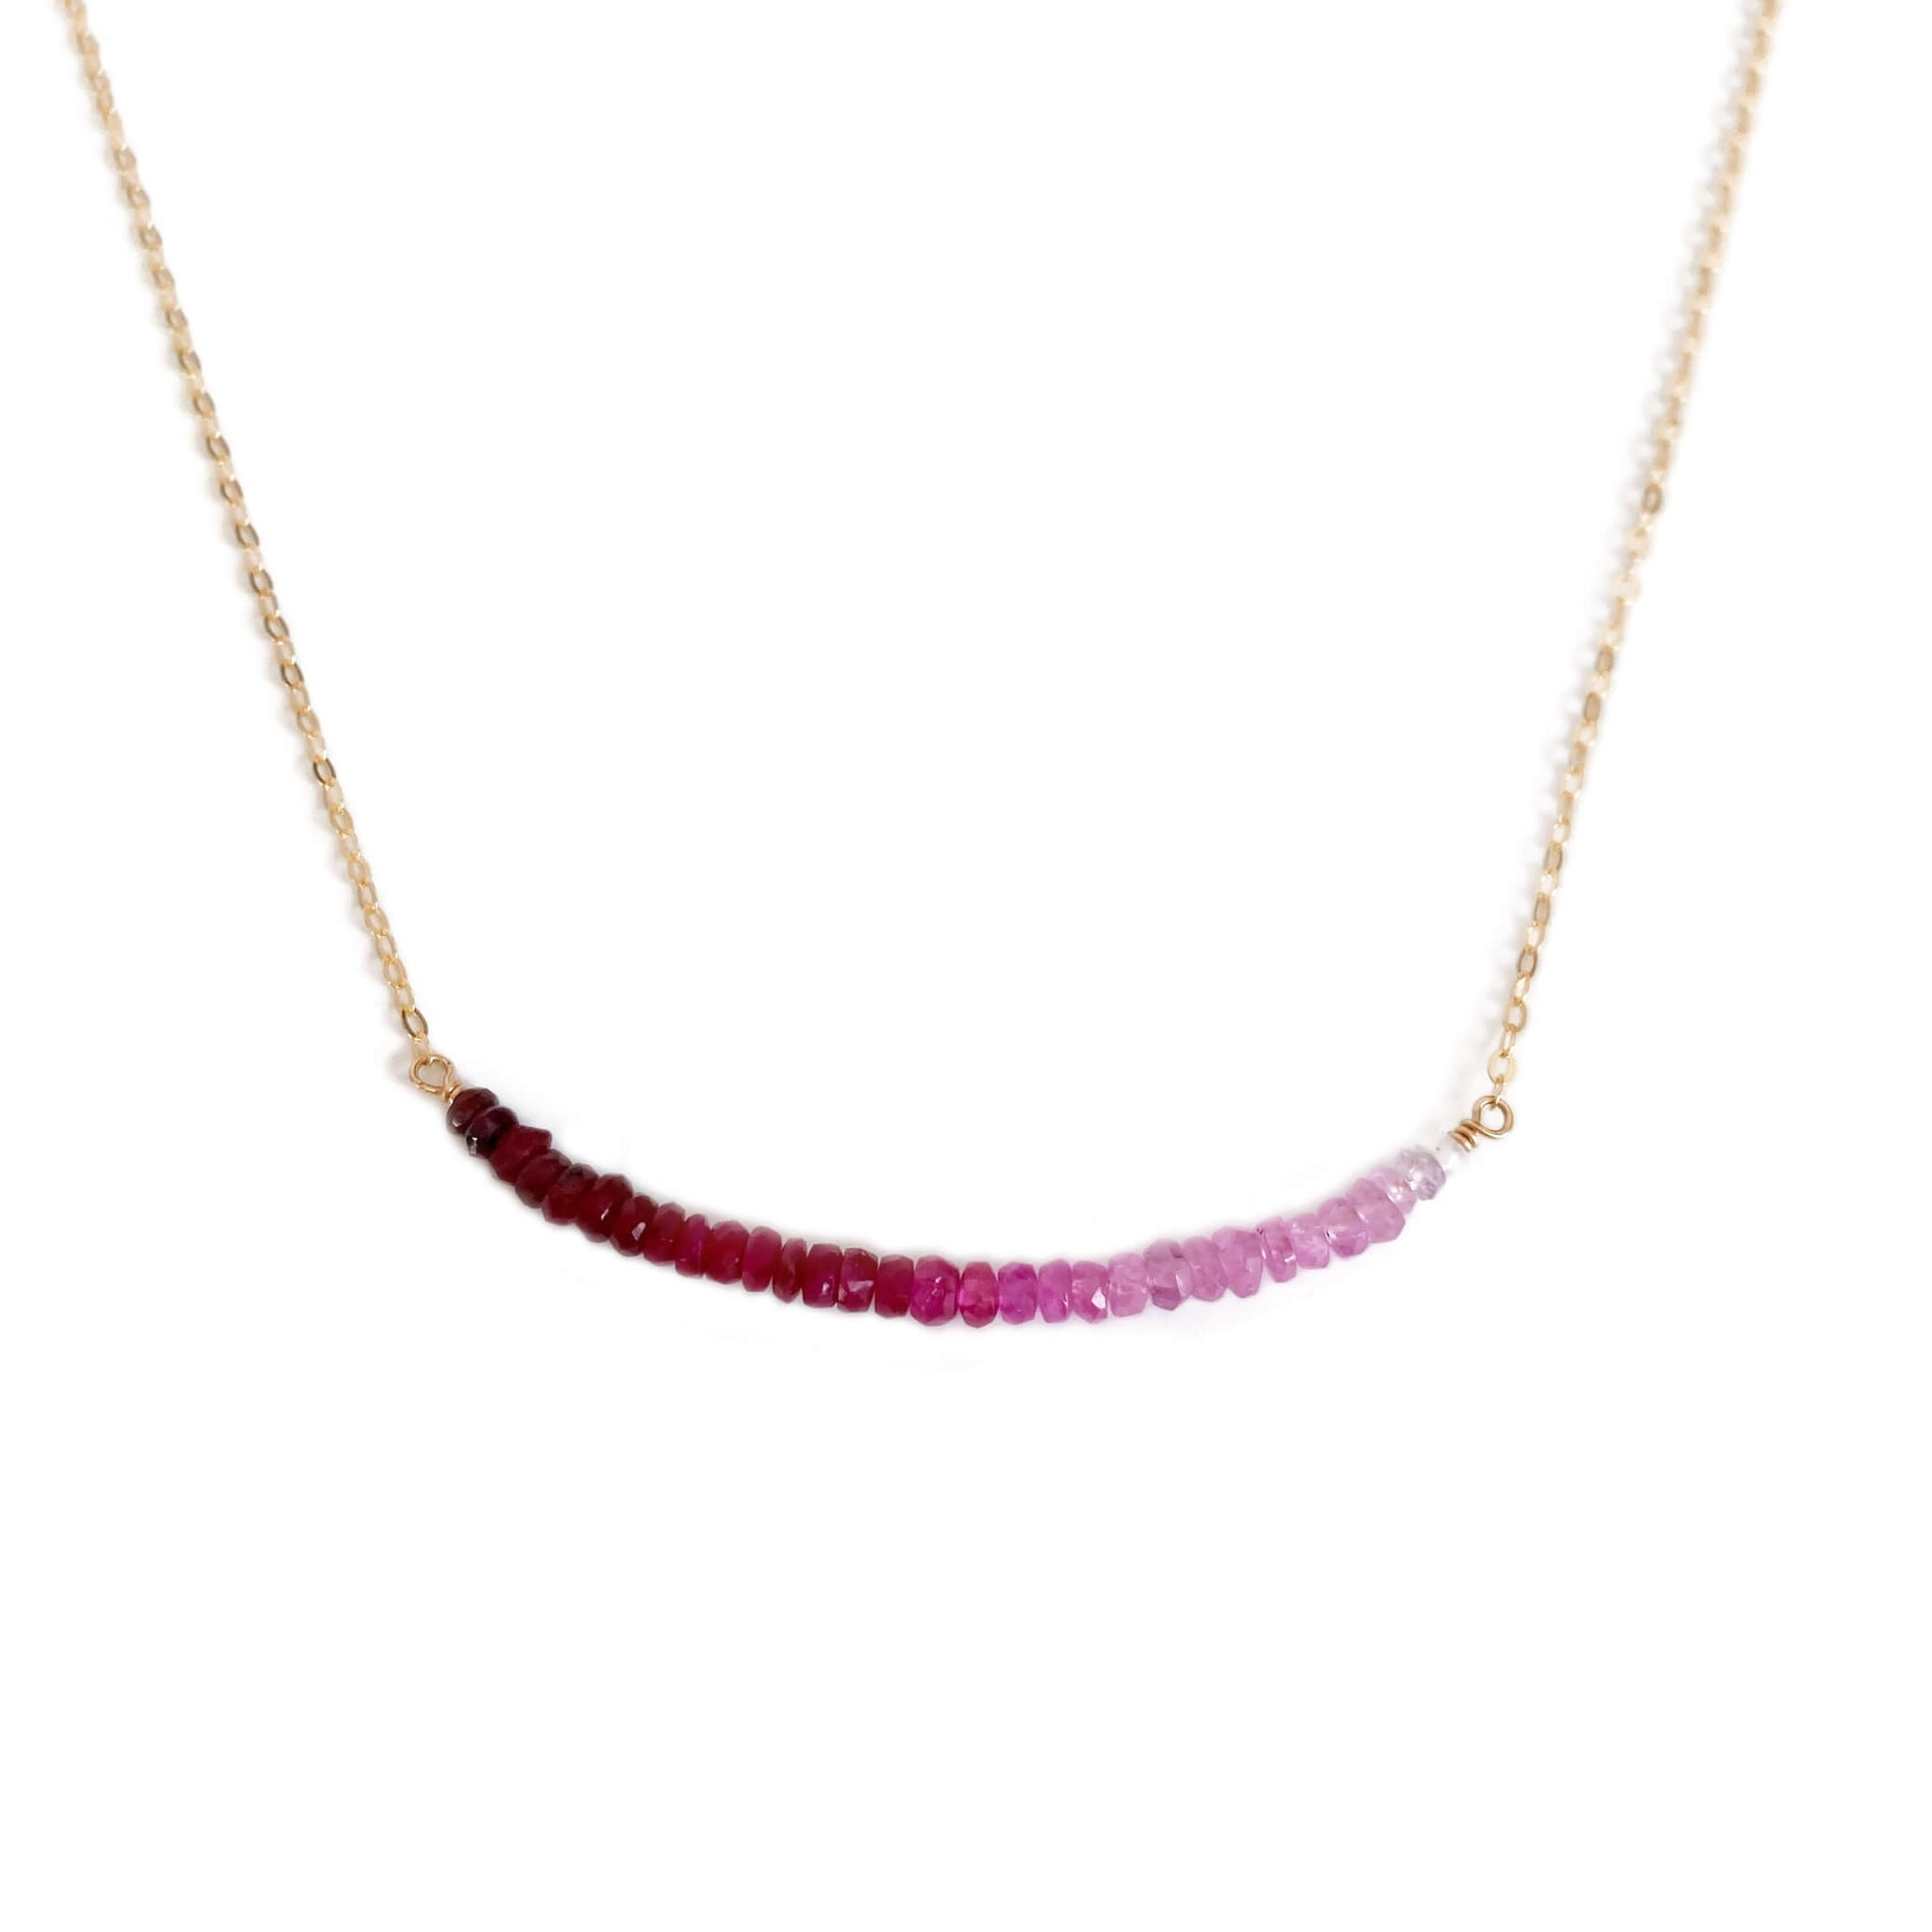 This ombre ruby necklace is made of shaded genuine ruby beads and 14k gold chain. It can also be made in sterling silver or gold filled chain with extender.